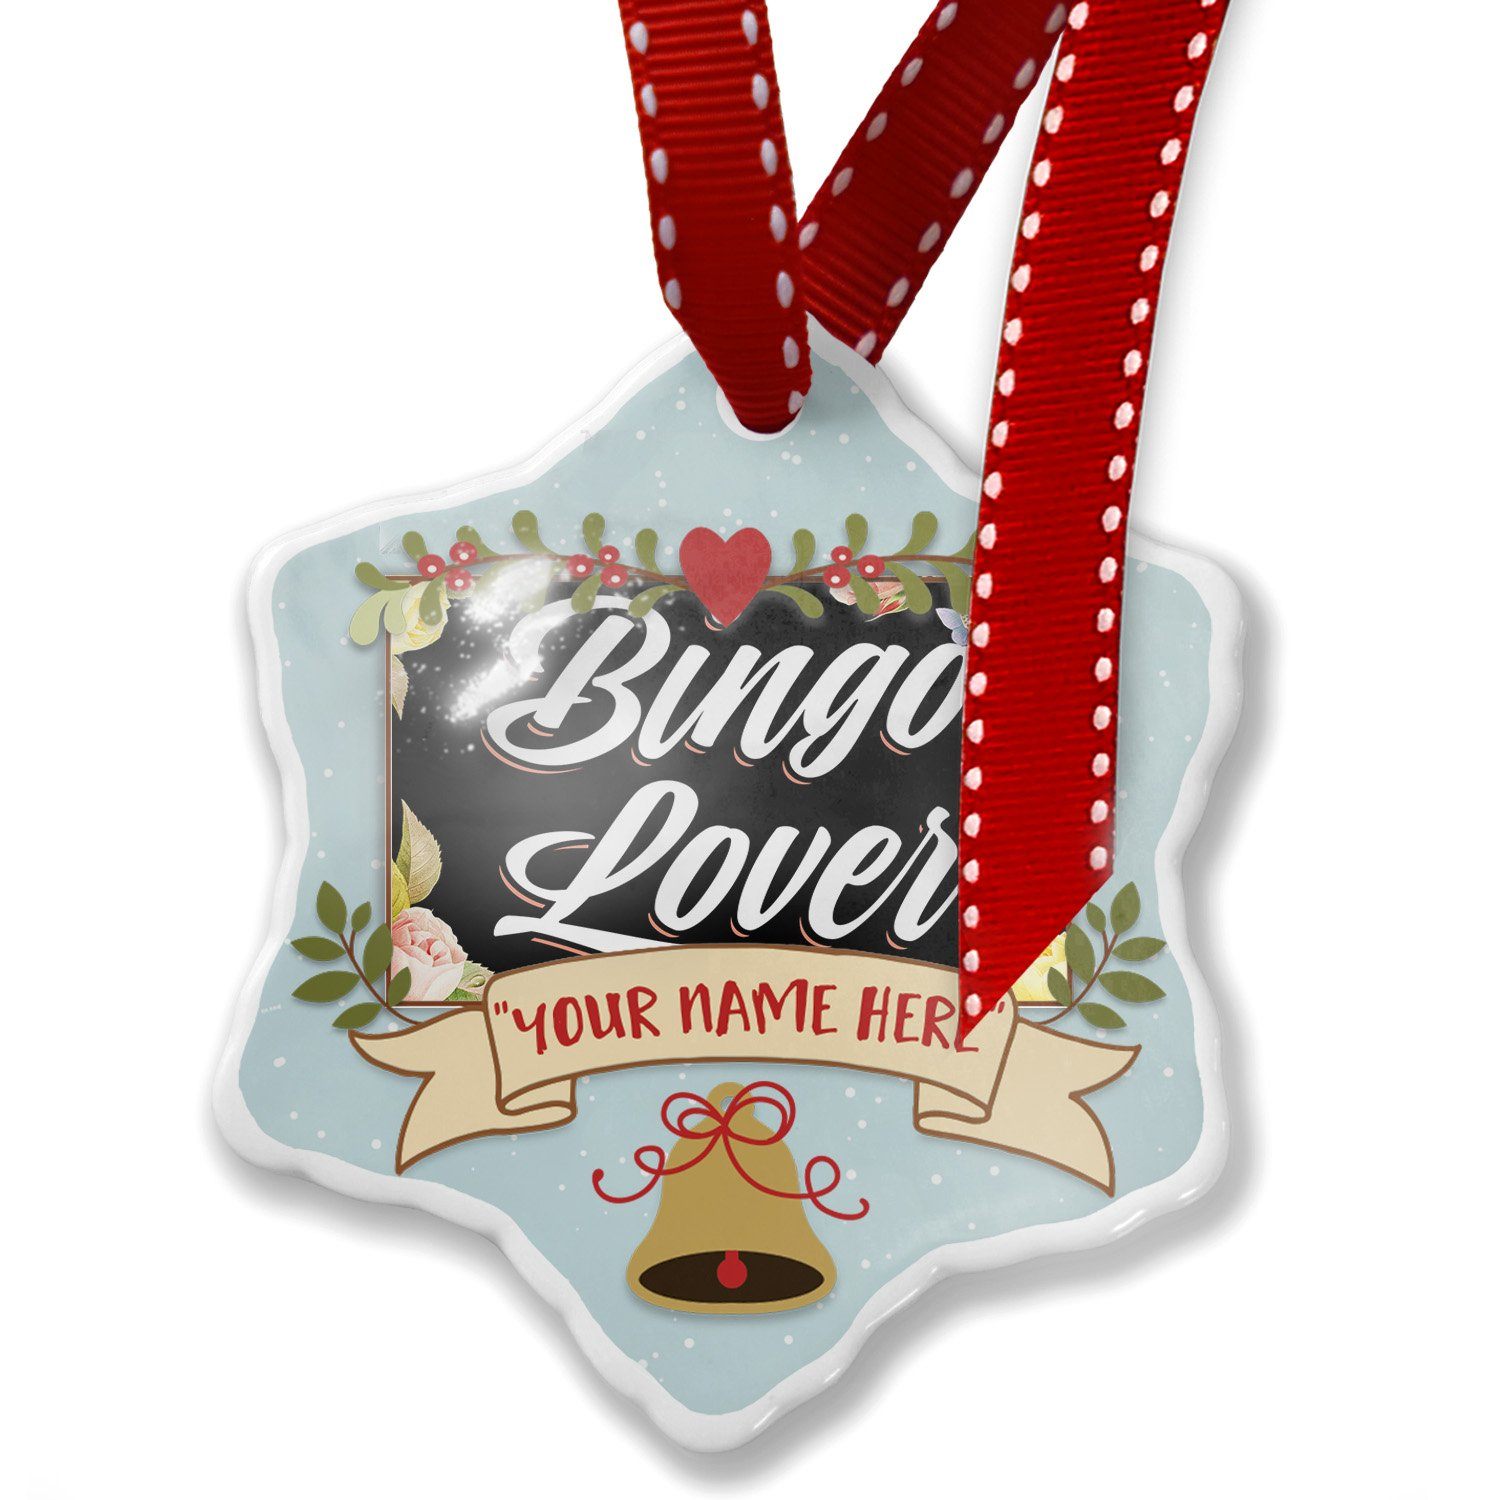 Add Your Own Custom Name, Floral Border Bingo Lover Christmas Ornament NEONBLOND